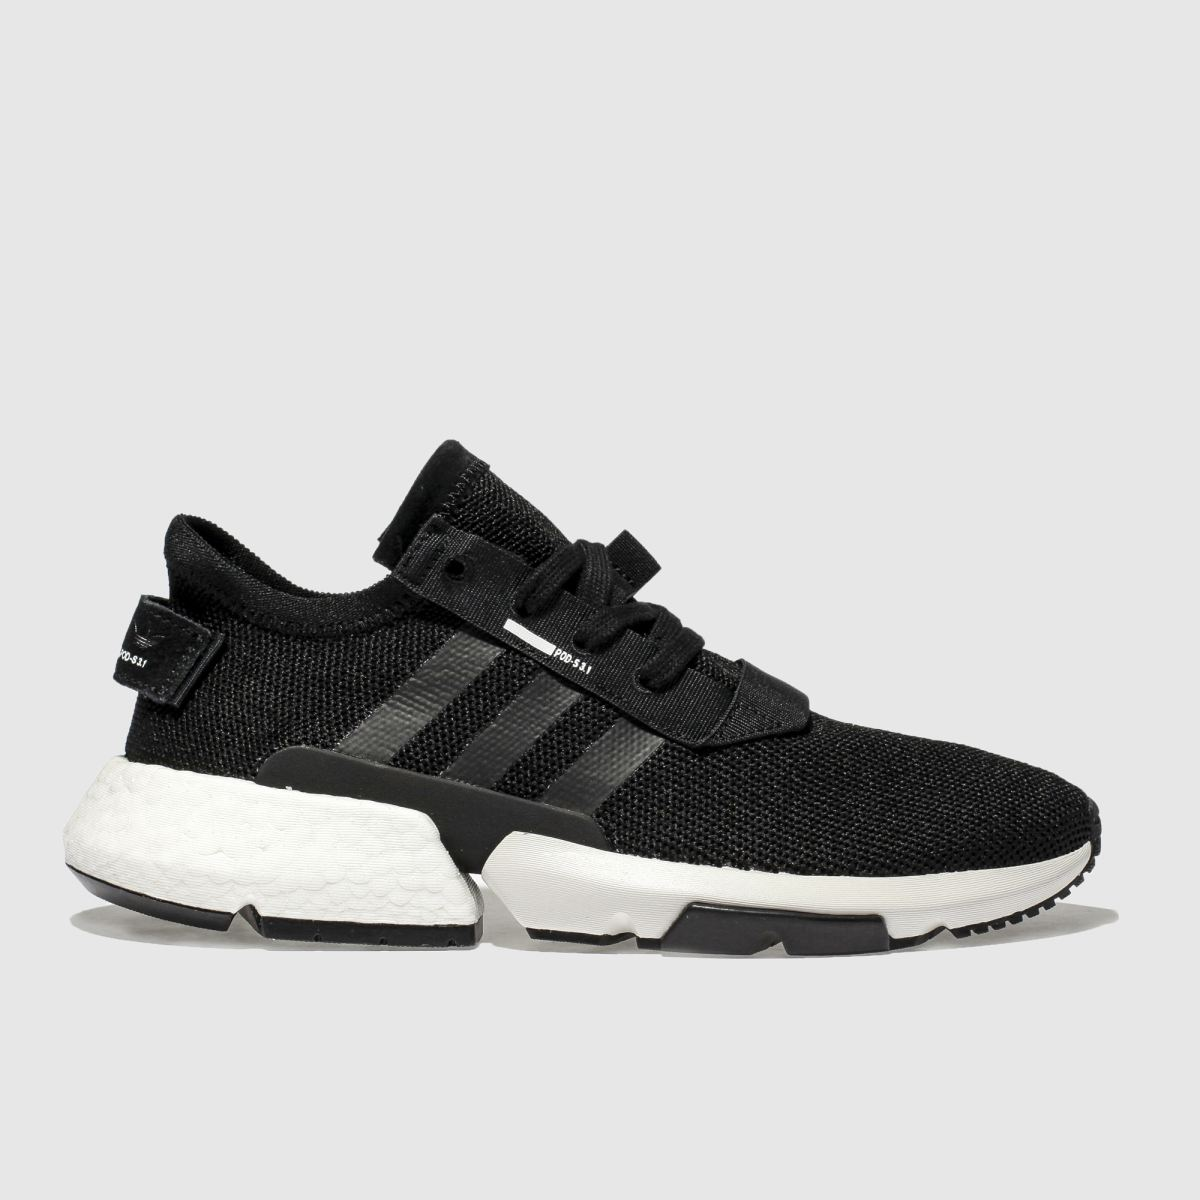 Adidas Black & White Pod-s3.1 Trainers